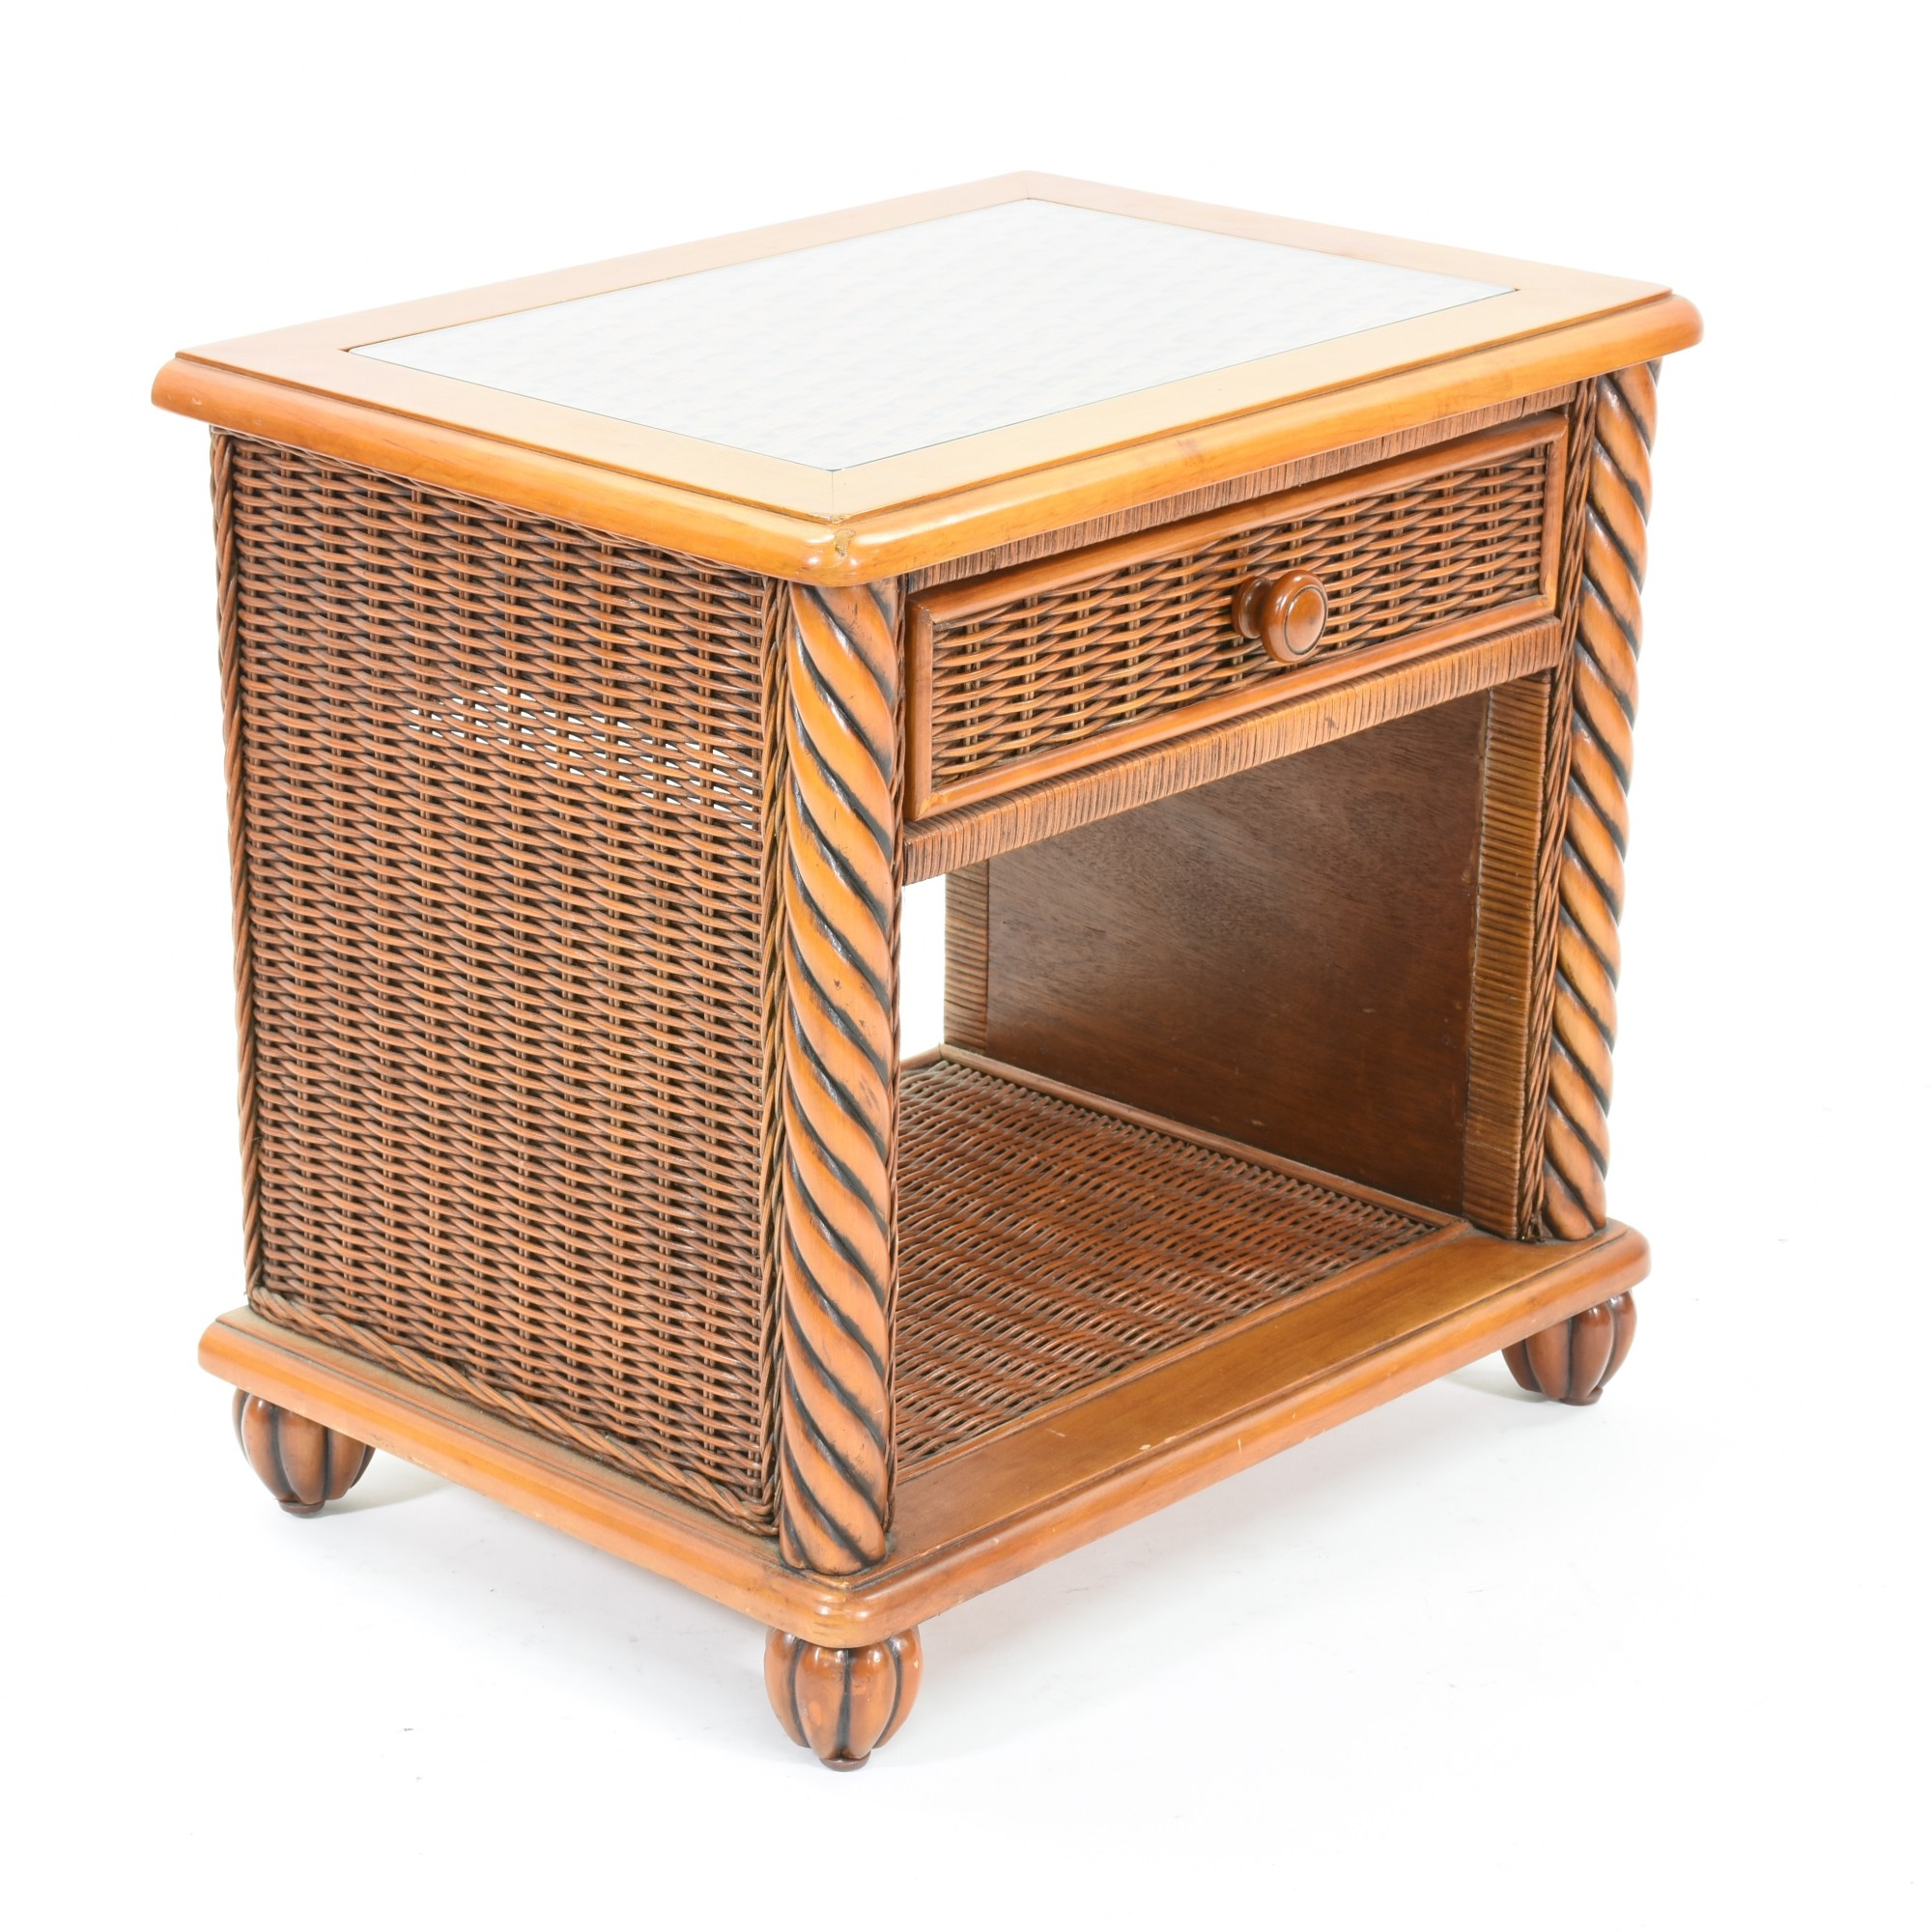 Wicker Nightstands with Glass Top